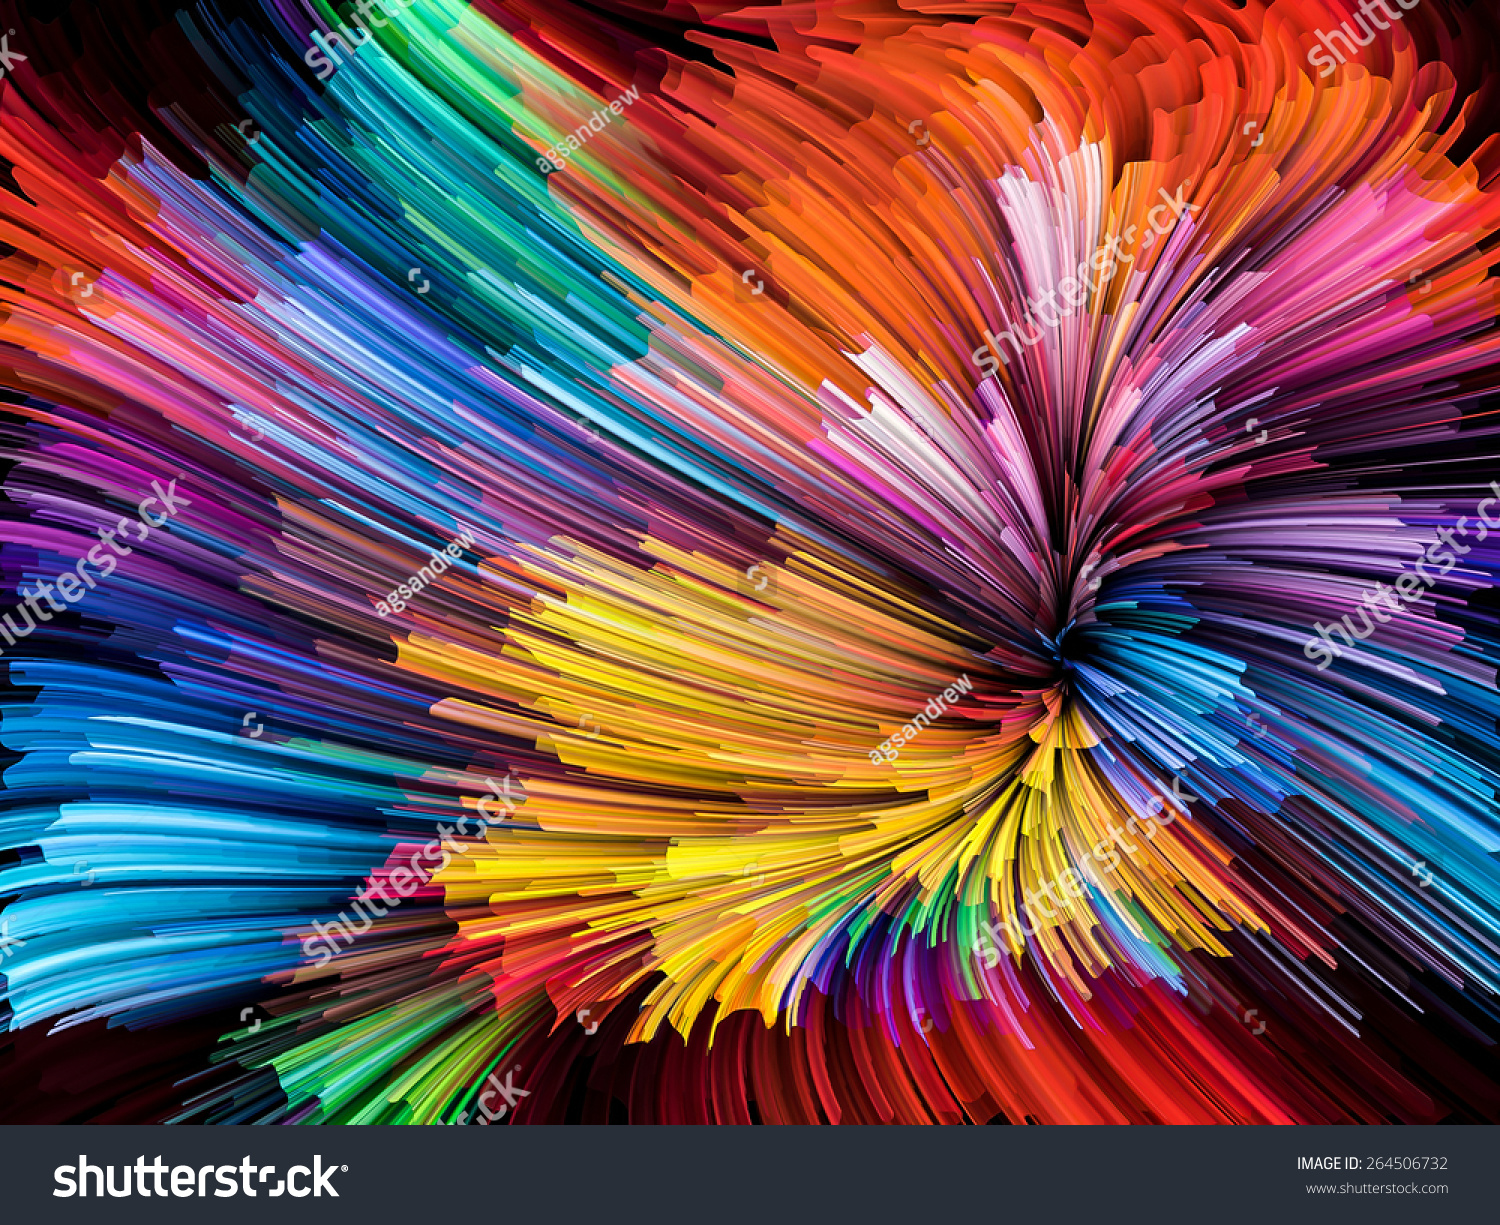 Color and art - Dynamic Color Series Arrangement Of Streams Of Paint On The Subject Of Forces Of Nature